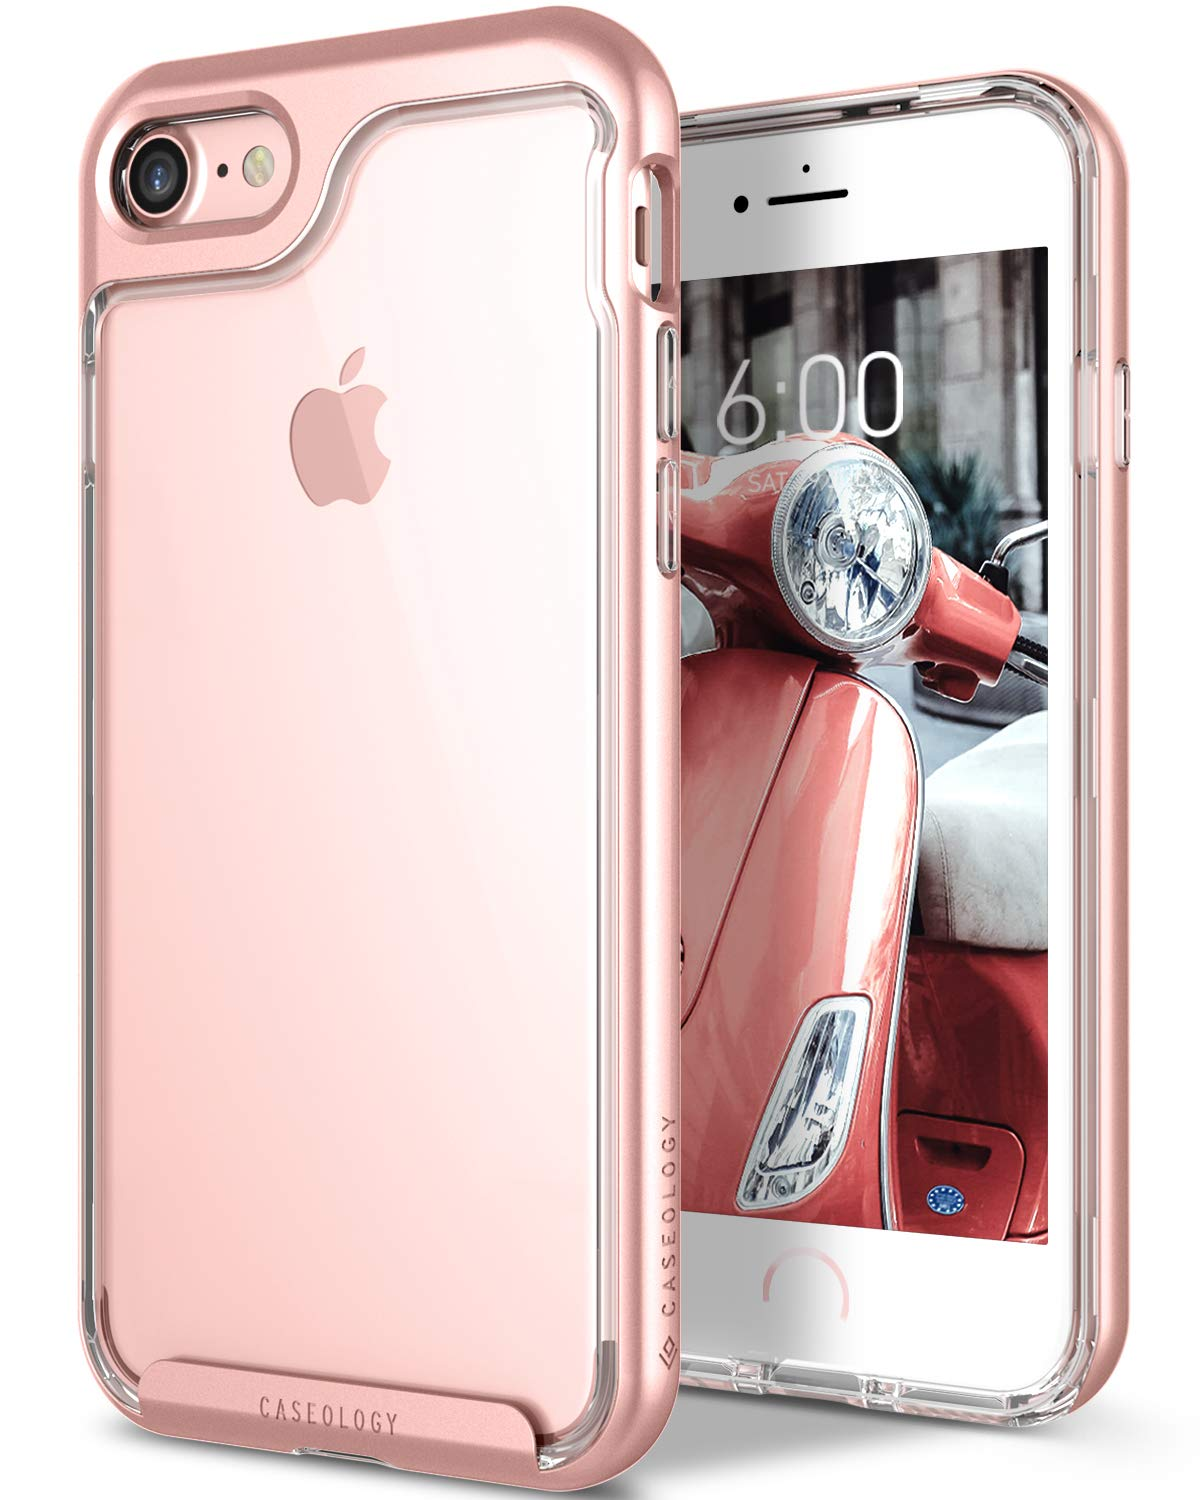 official photos 0cc7b a1515 Caseology Skyfall for Apple iPhone 8 Case (2017) / for iPhone 7 Case (2016)  - Clear Back & Slim Fit - Rose Gold